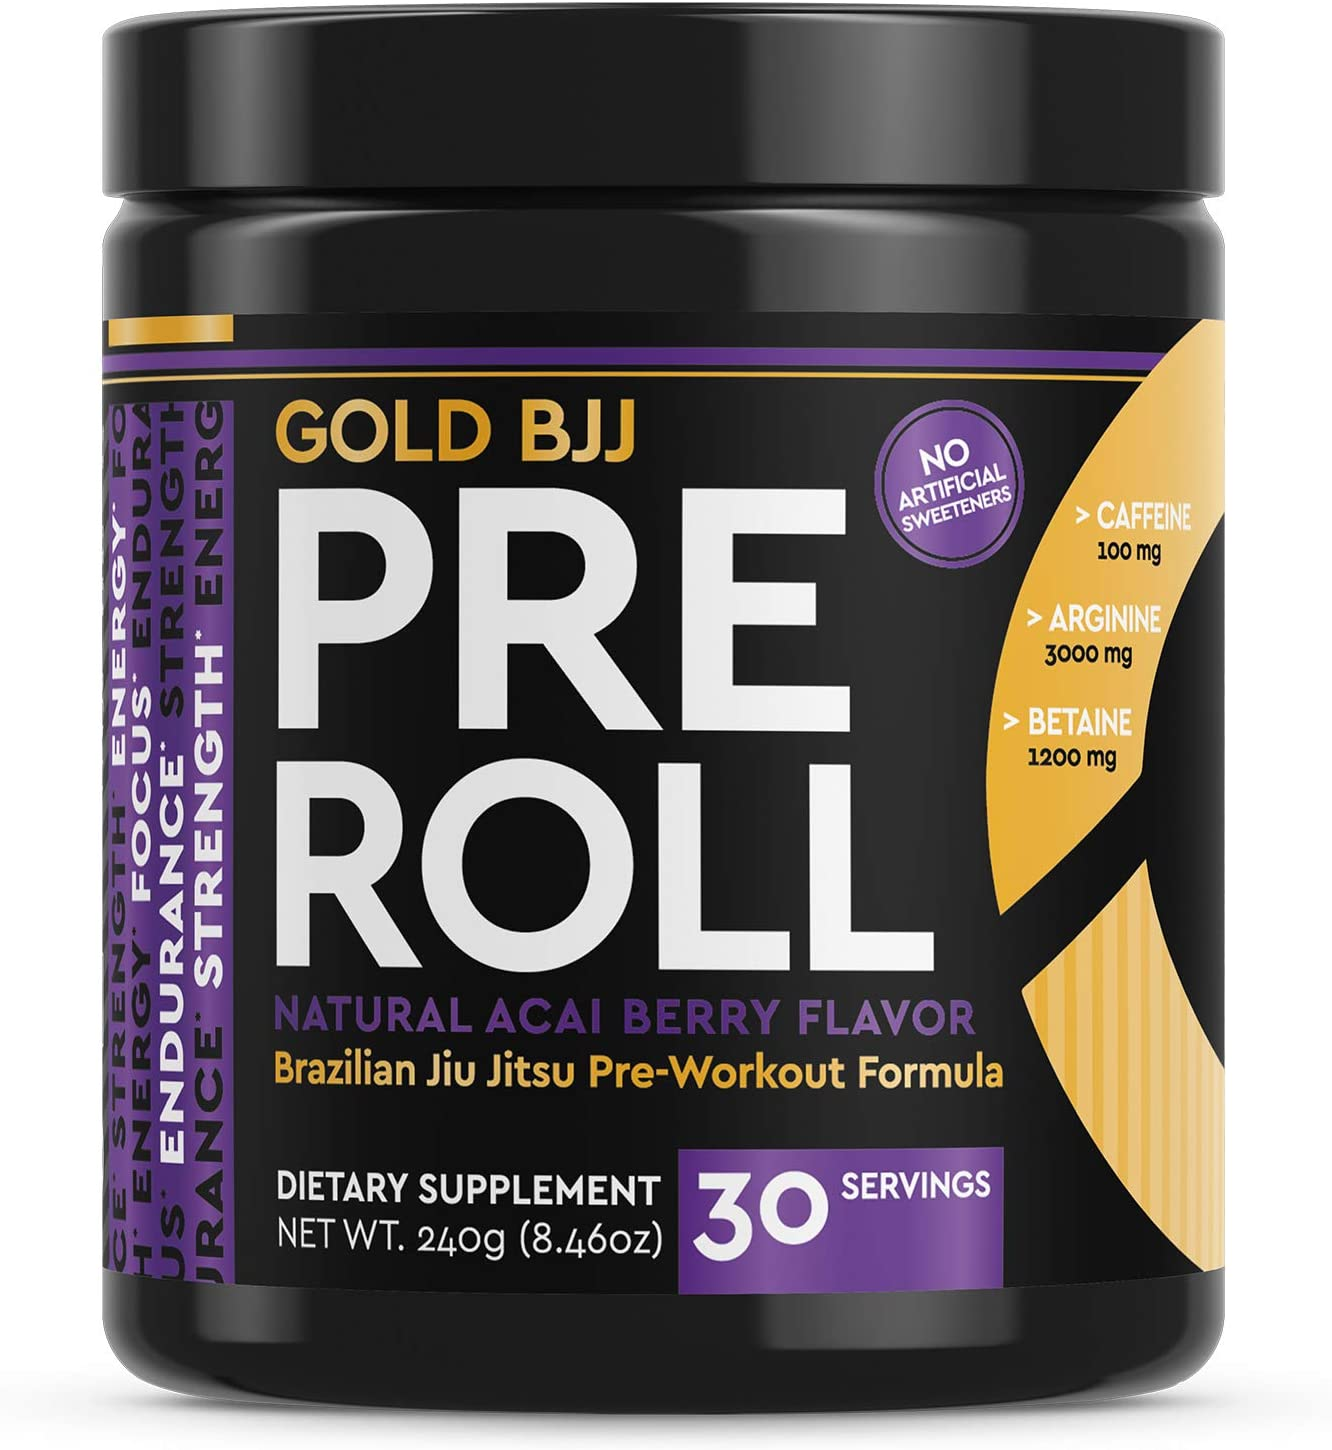 Gold BJJ PreRoll – Jiu Jitsu Pre Workout Supplement for Energy, Focus, and Endurance – Martial Arts Specific Pre-Workout Powder Formula with Natural Flavors Acai Berry, 30 Servings